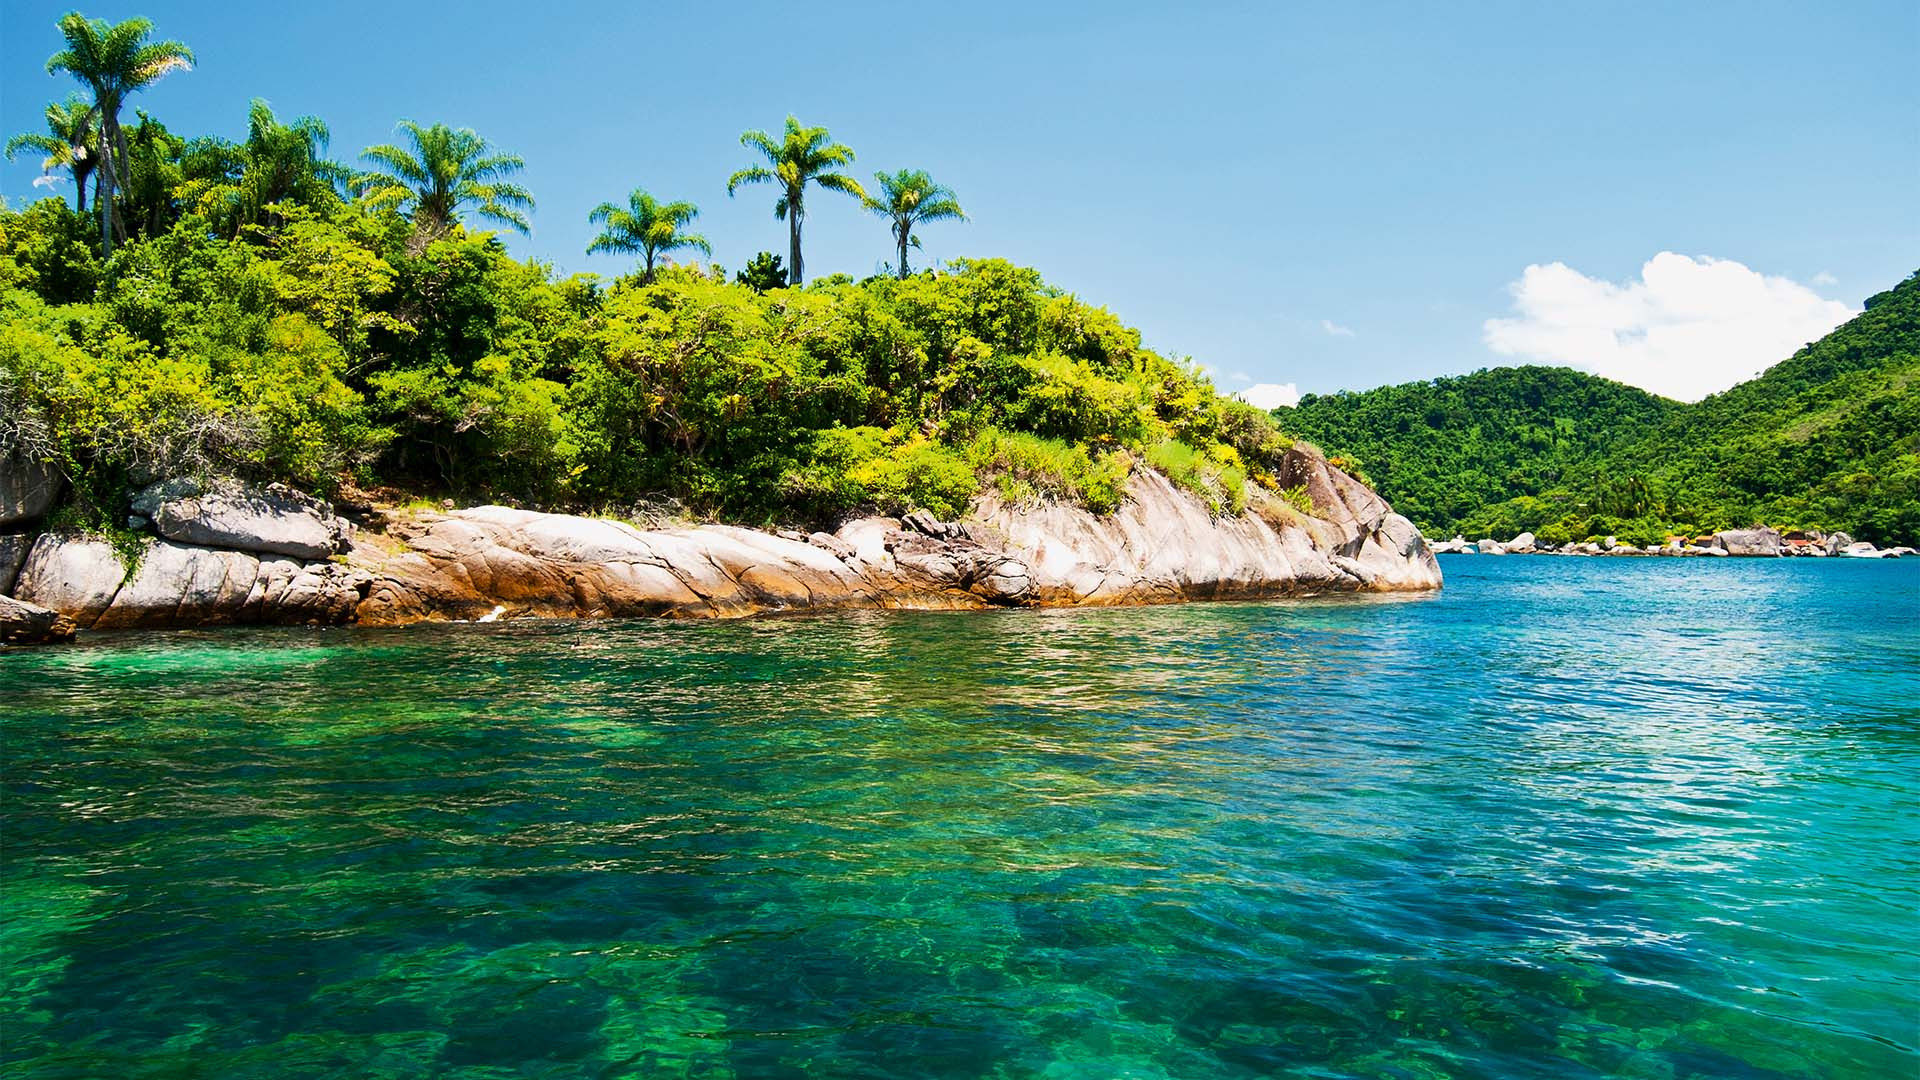 Photograph of a tropical beach in Paraty